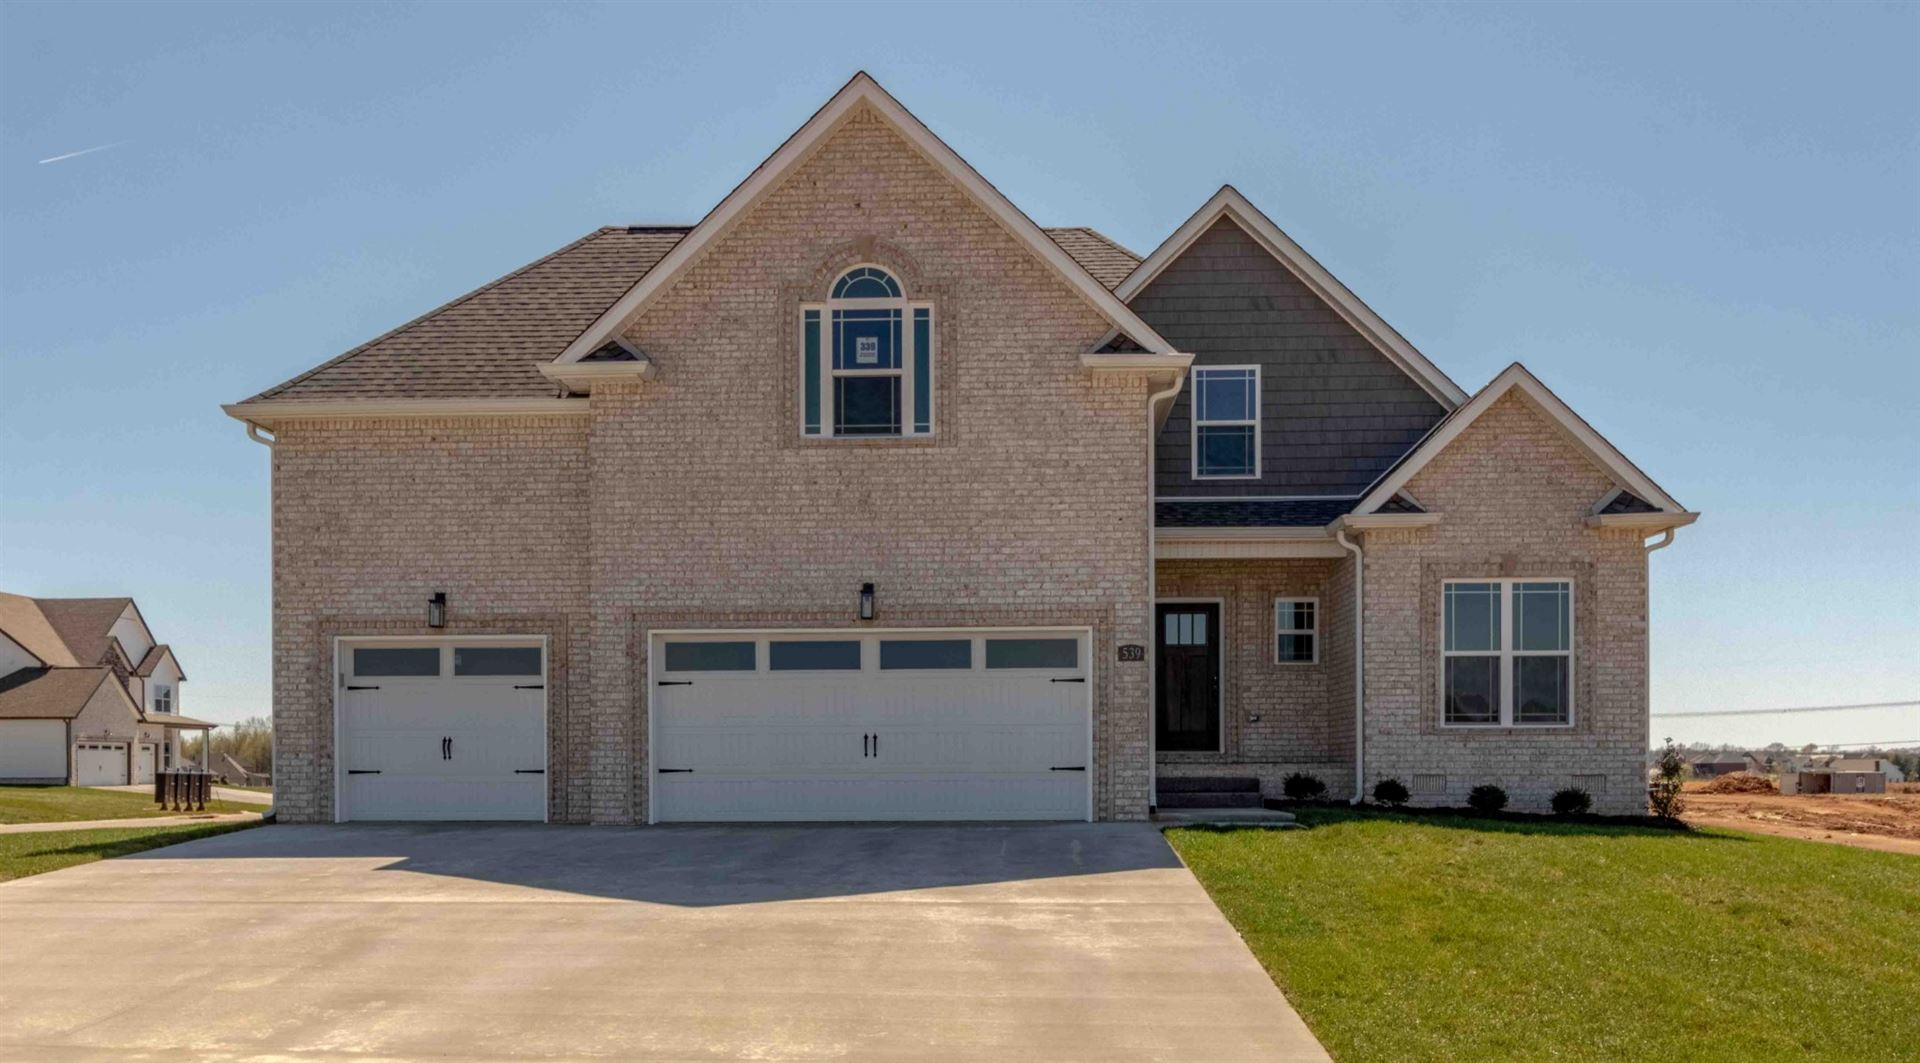 339 Wellington Fields, Clarksville, TN 37043 - MLS#: 2204814